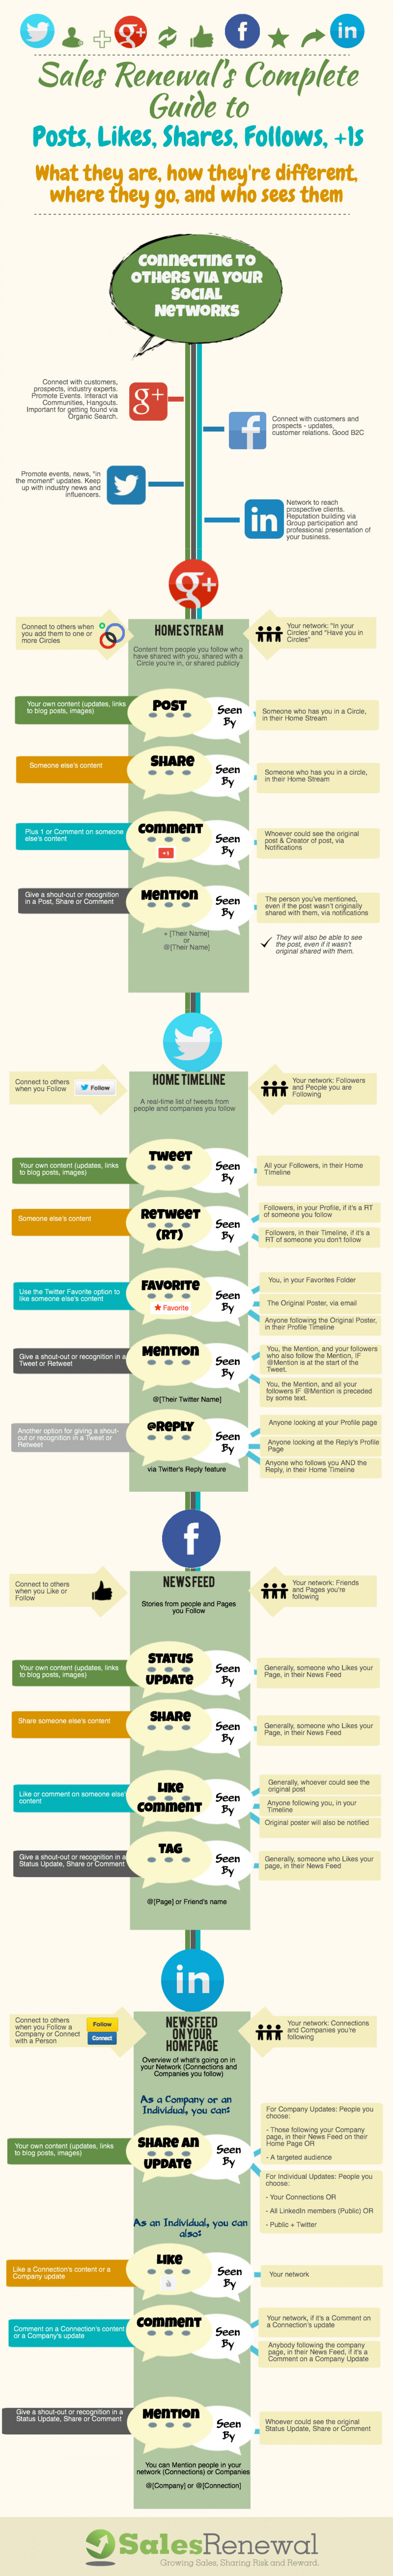 Sales Renewal's Guide to Social Posting Infographic